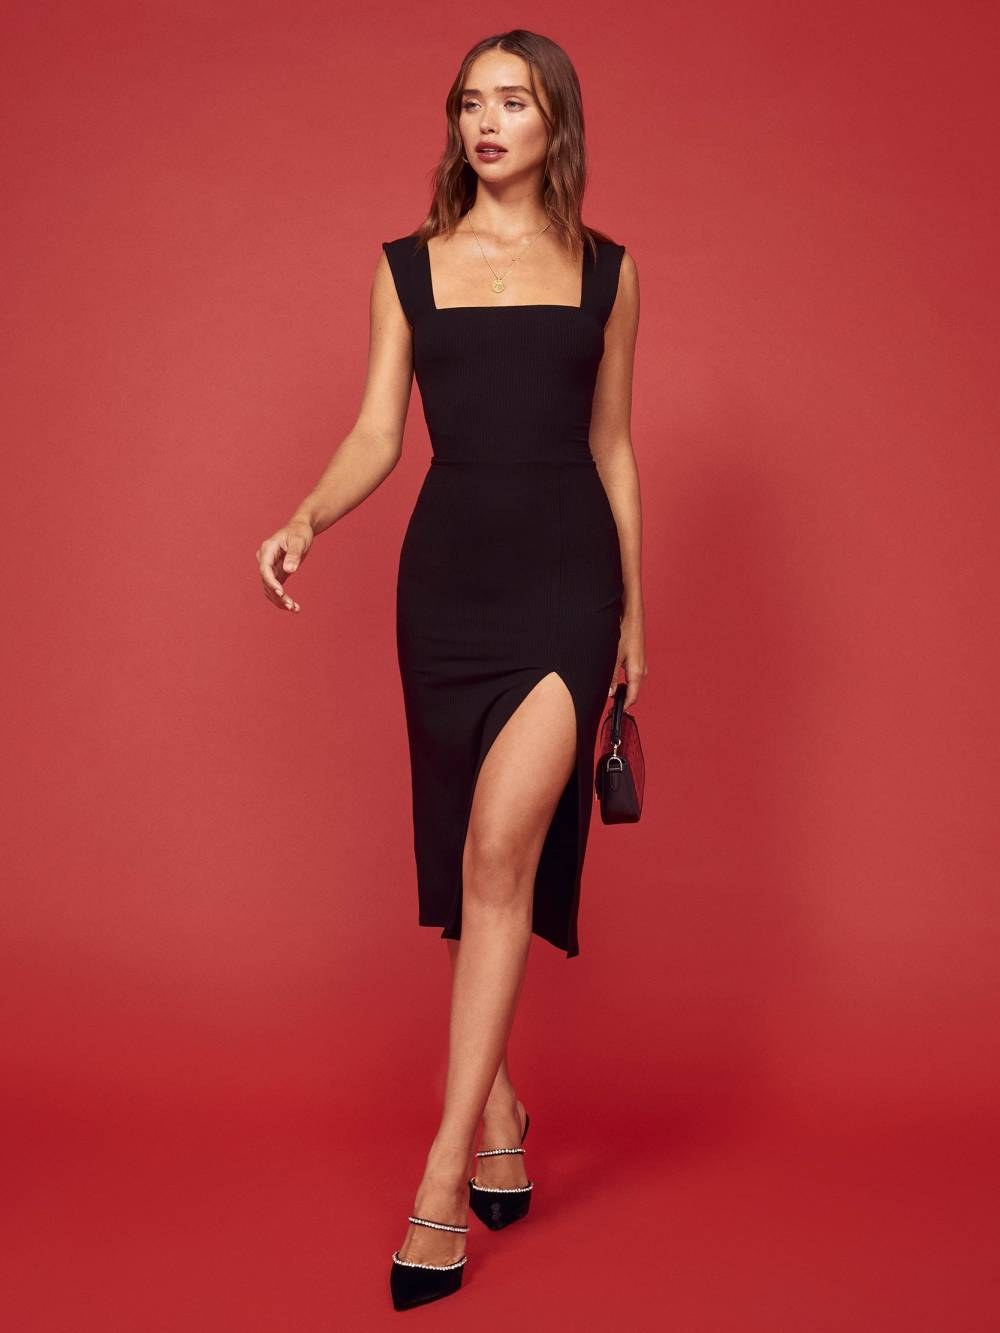 reformation timeless classic dresses